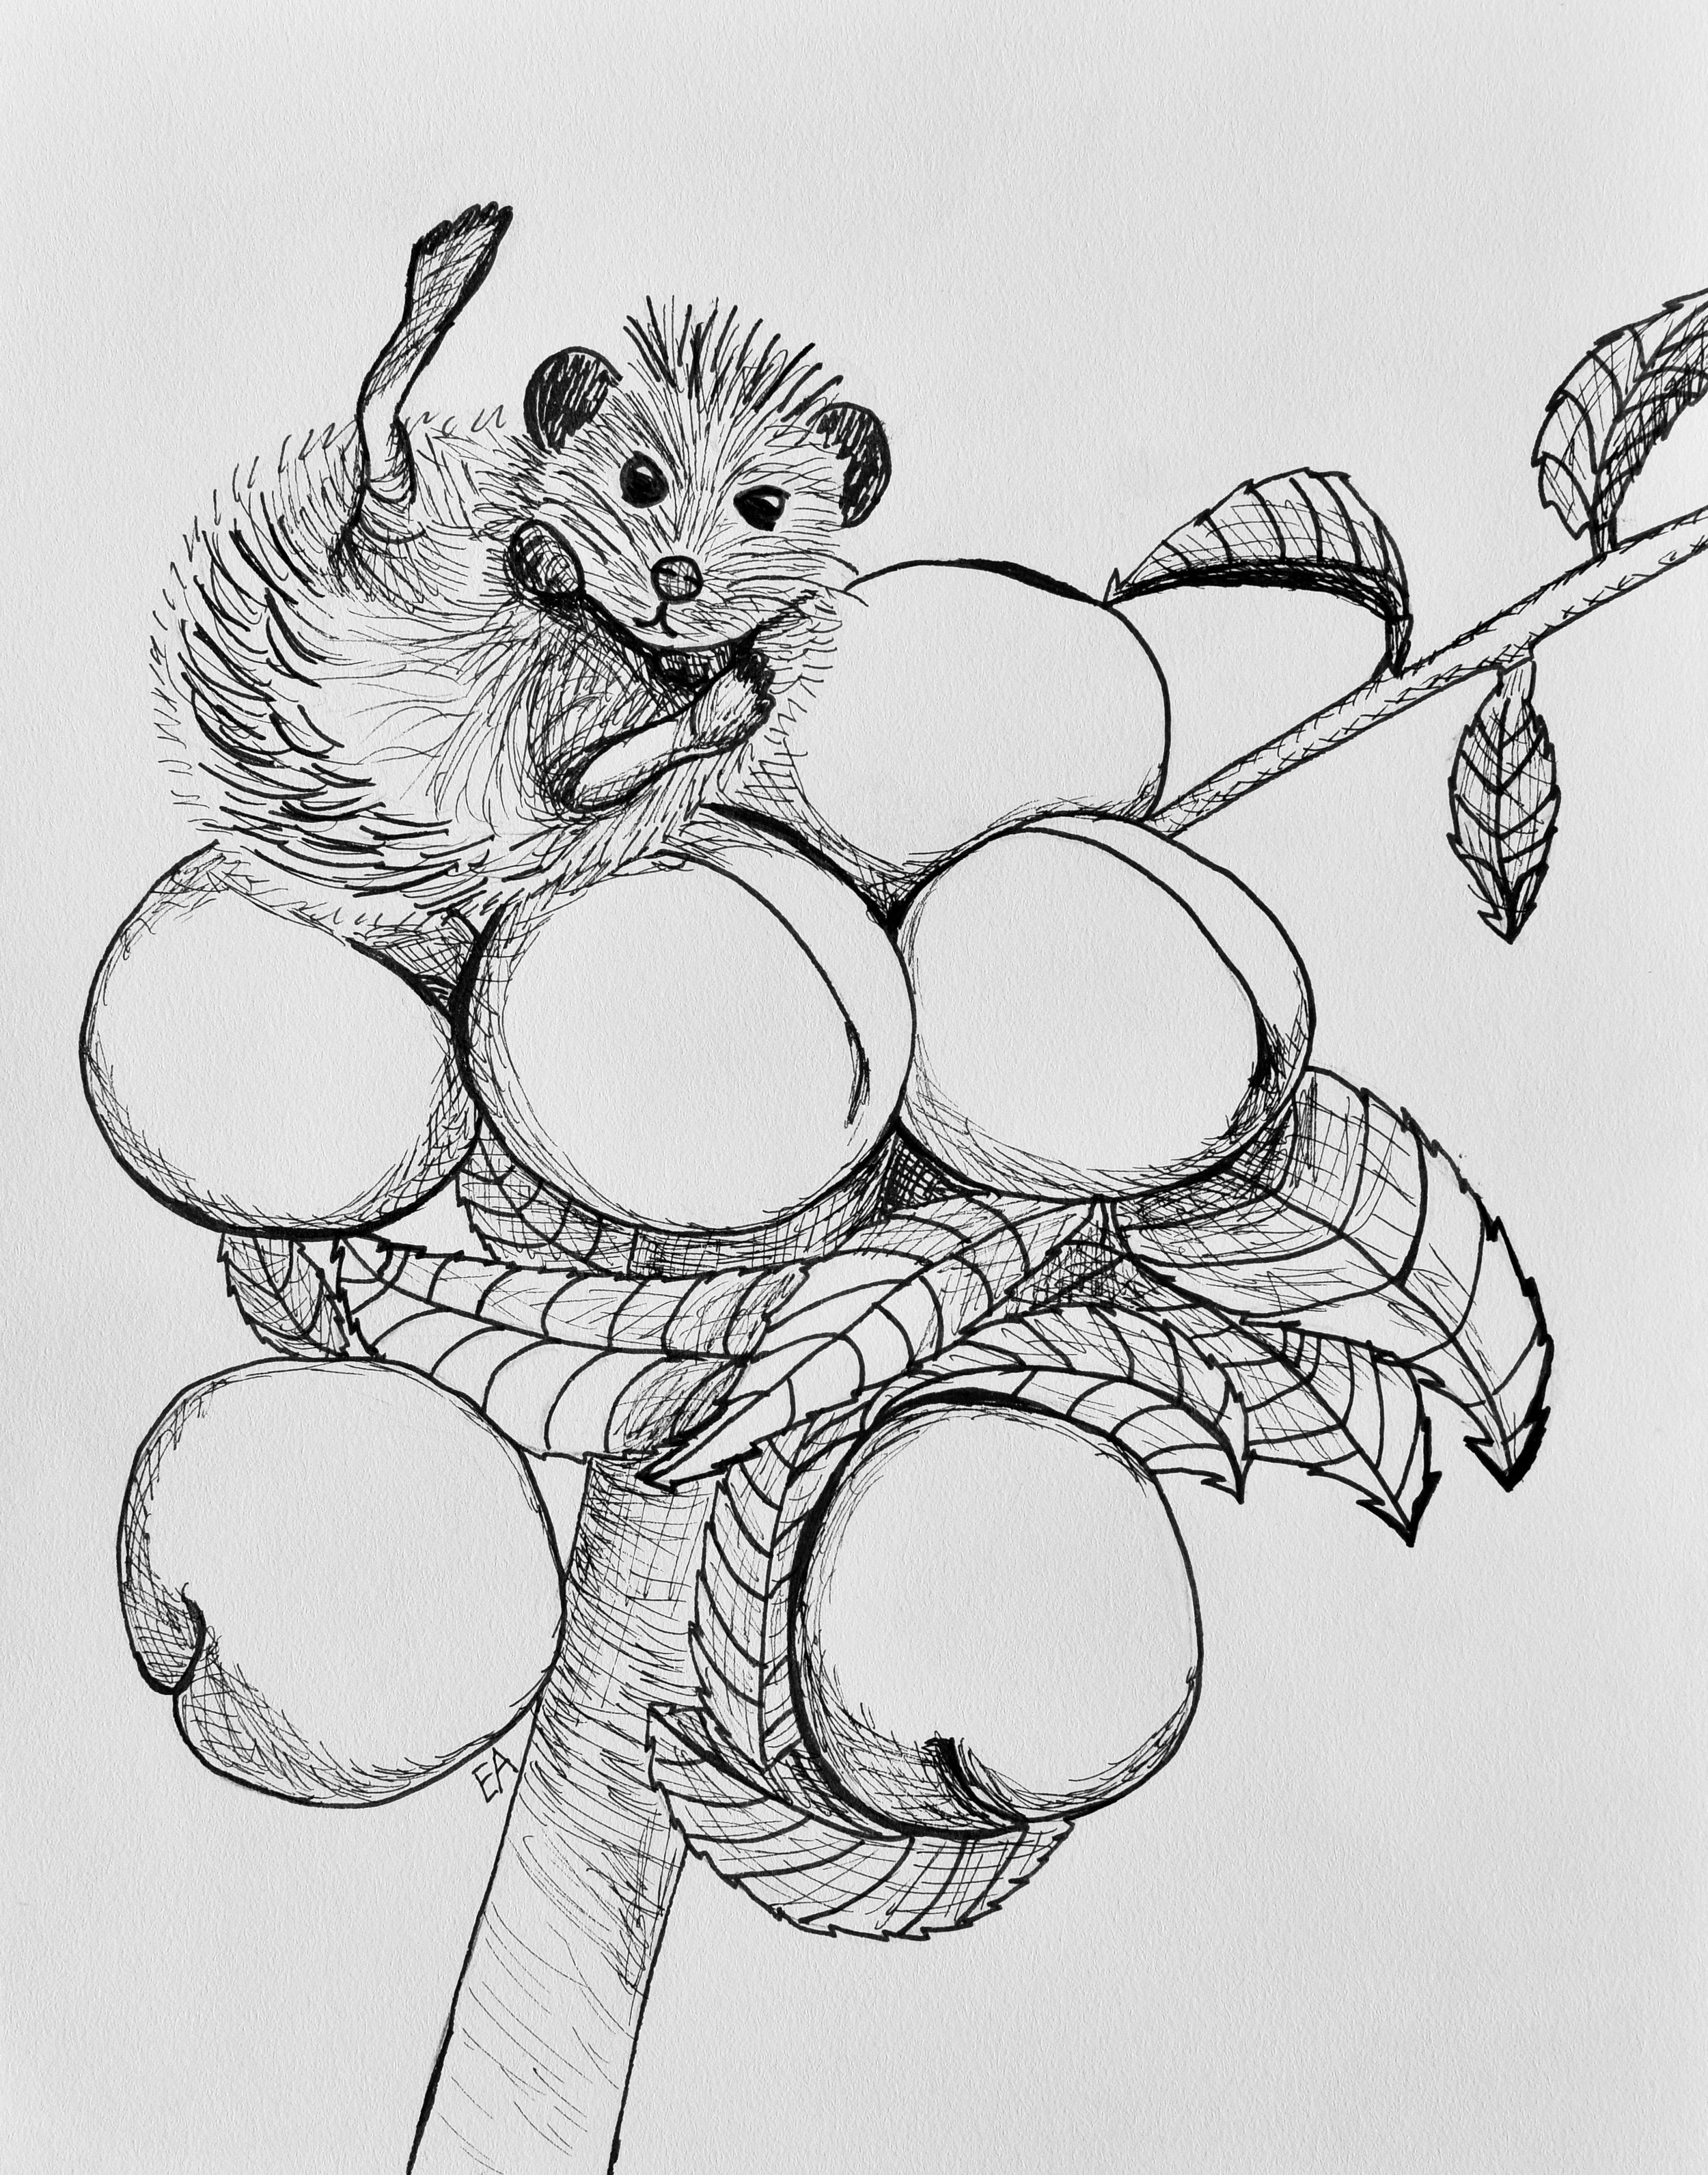 """""""Peachtree Hedgehog"""" 8x10 Pen on Strathmore 400 series paper. SOLD."""